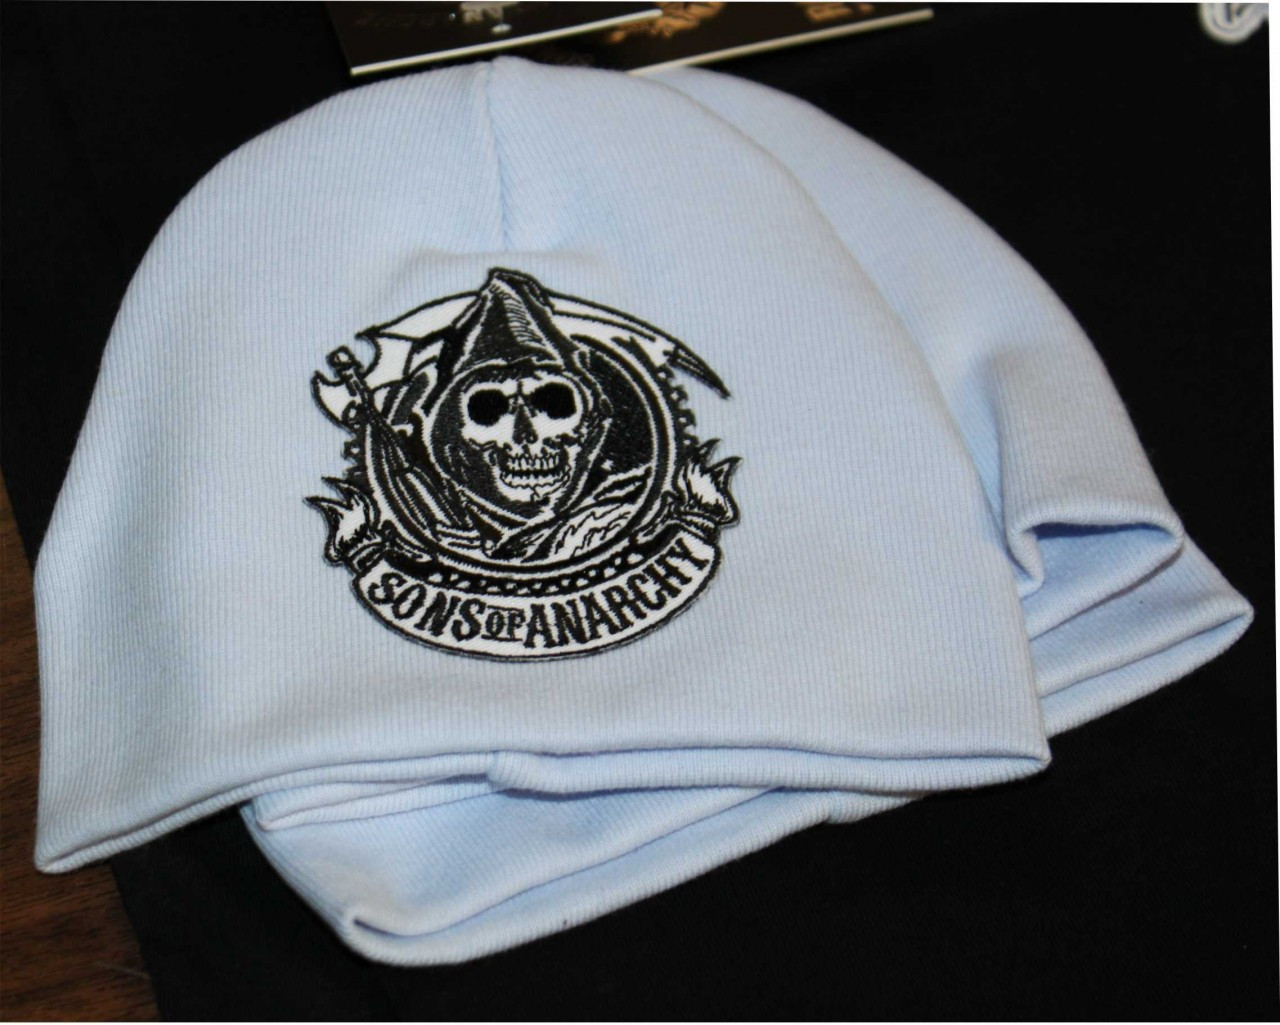 23272ed65c8 Baby Sons of Anarchy beanie. Price   11.31. Image 1